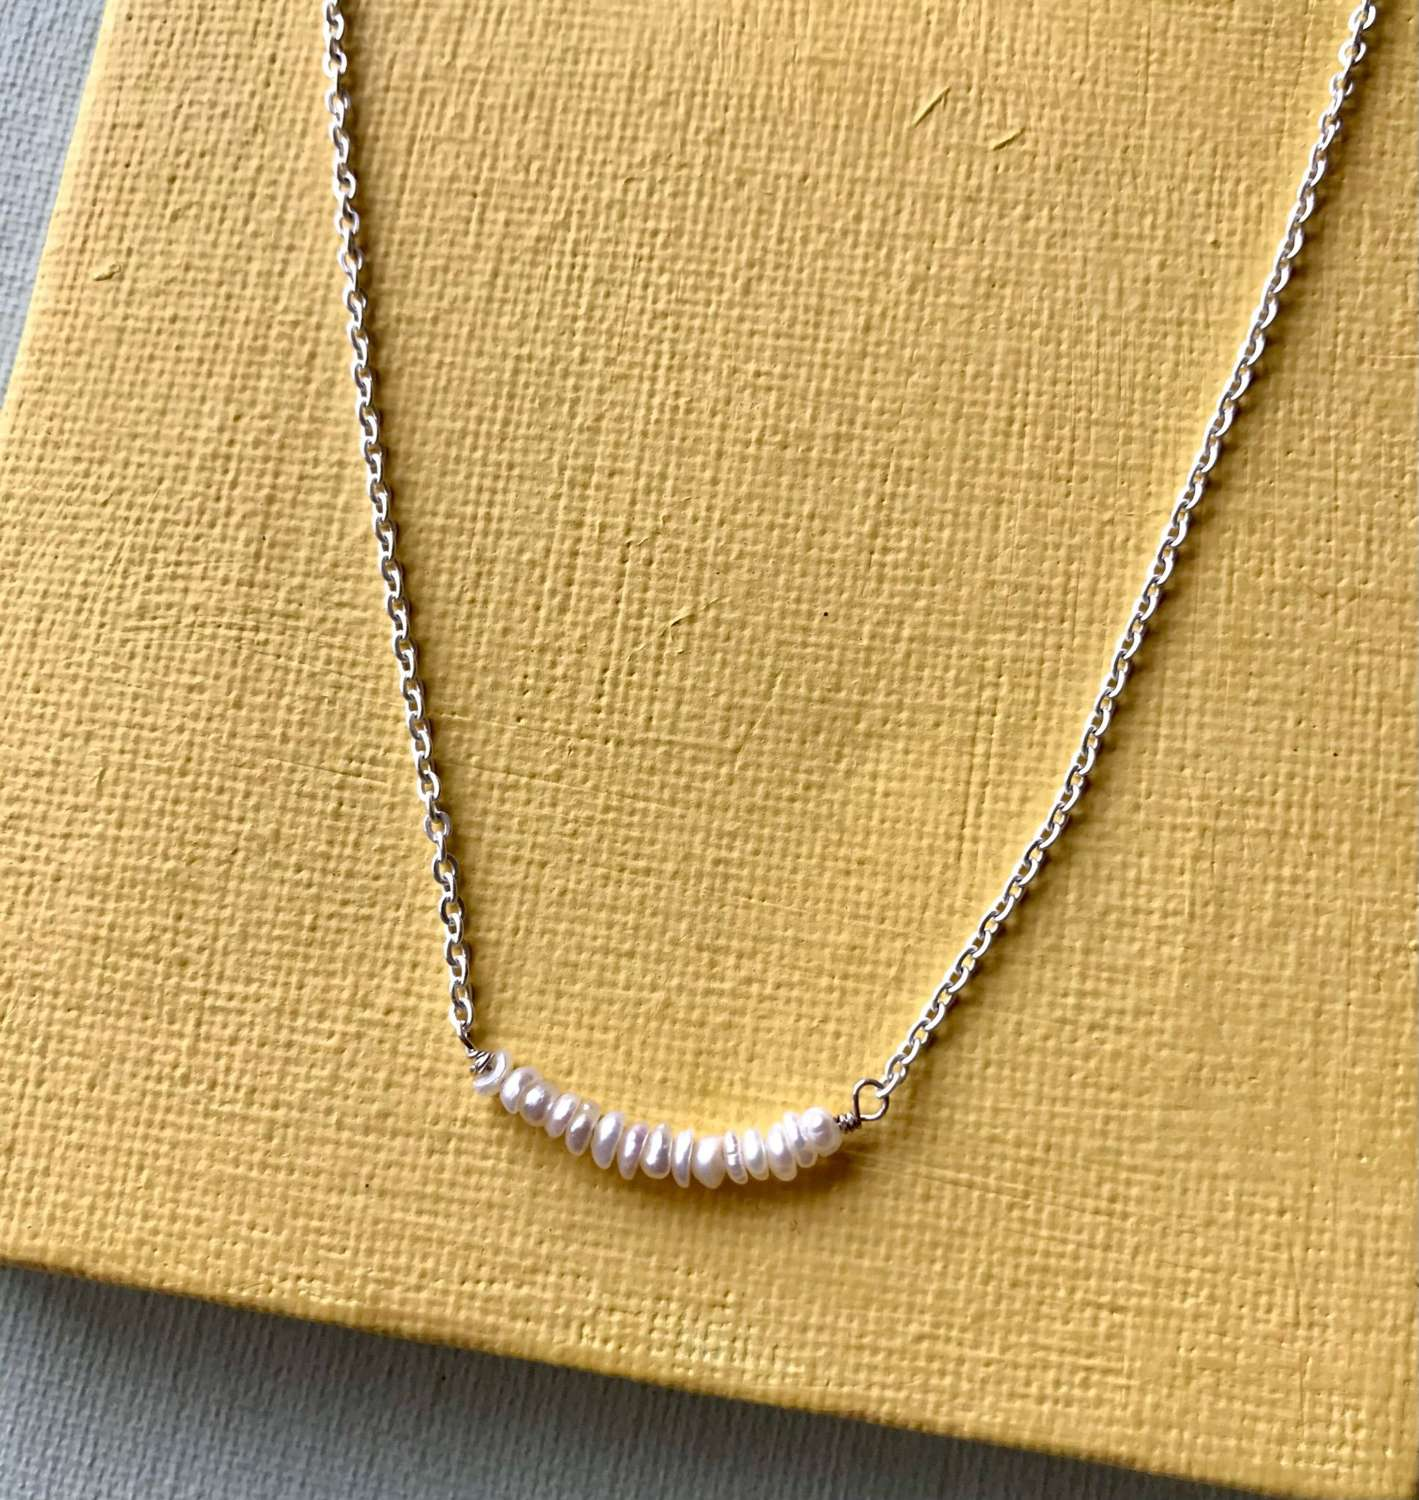 Elegant seed pearl chain necklace